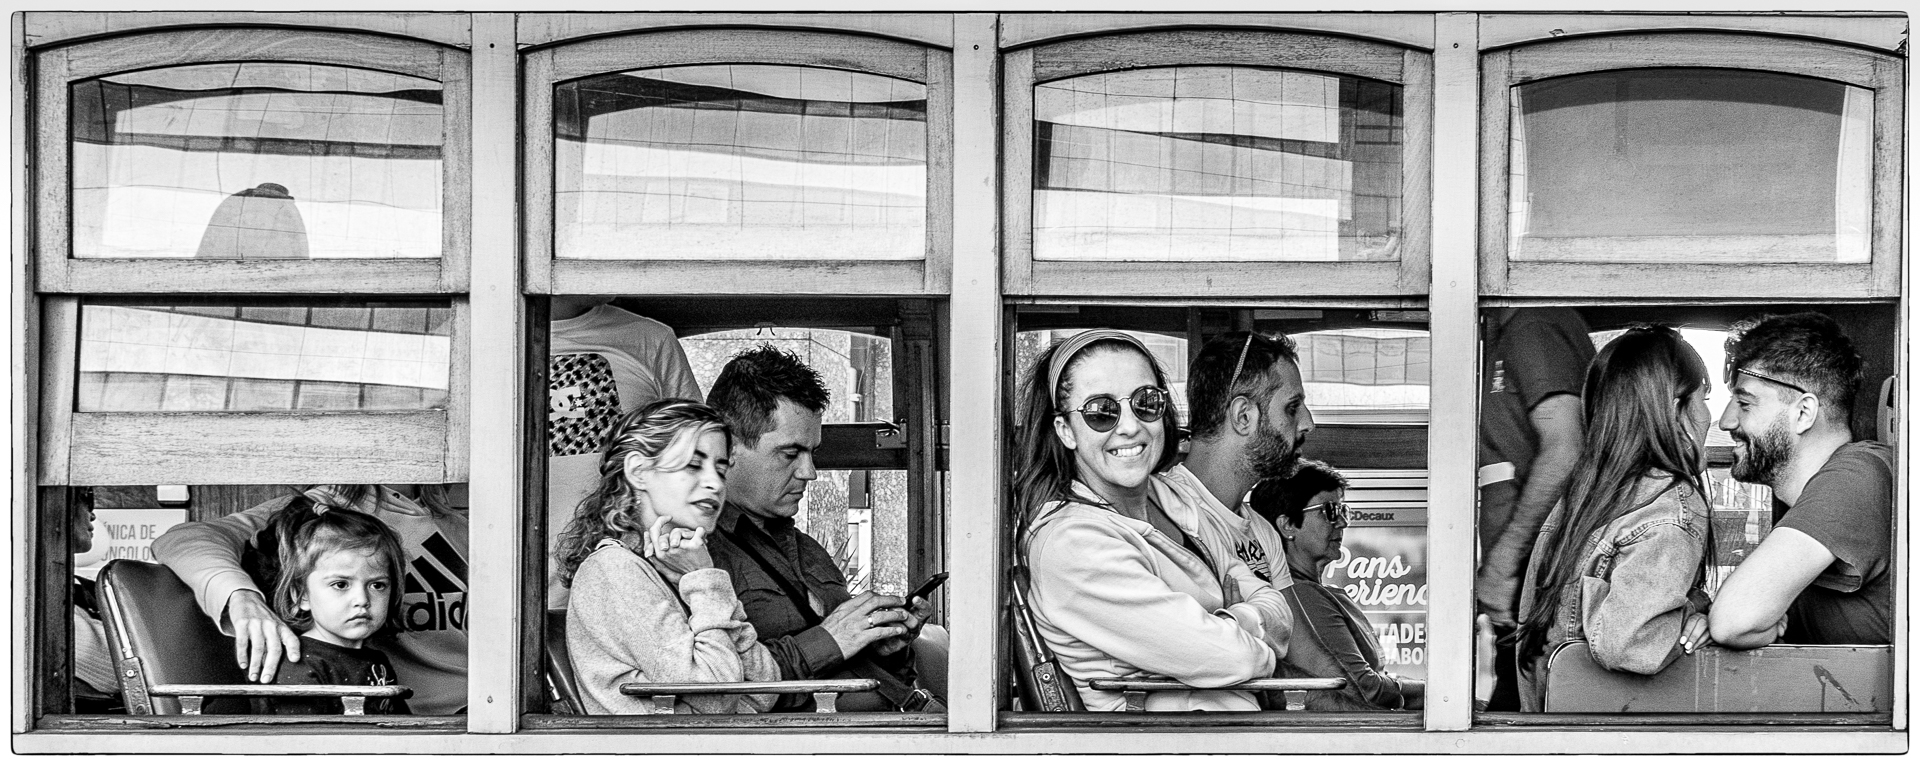 Faces-from-the-Trolley-in-Porto-MB-1-Place-by-Marnie-Walters-MR